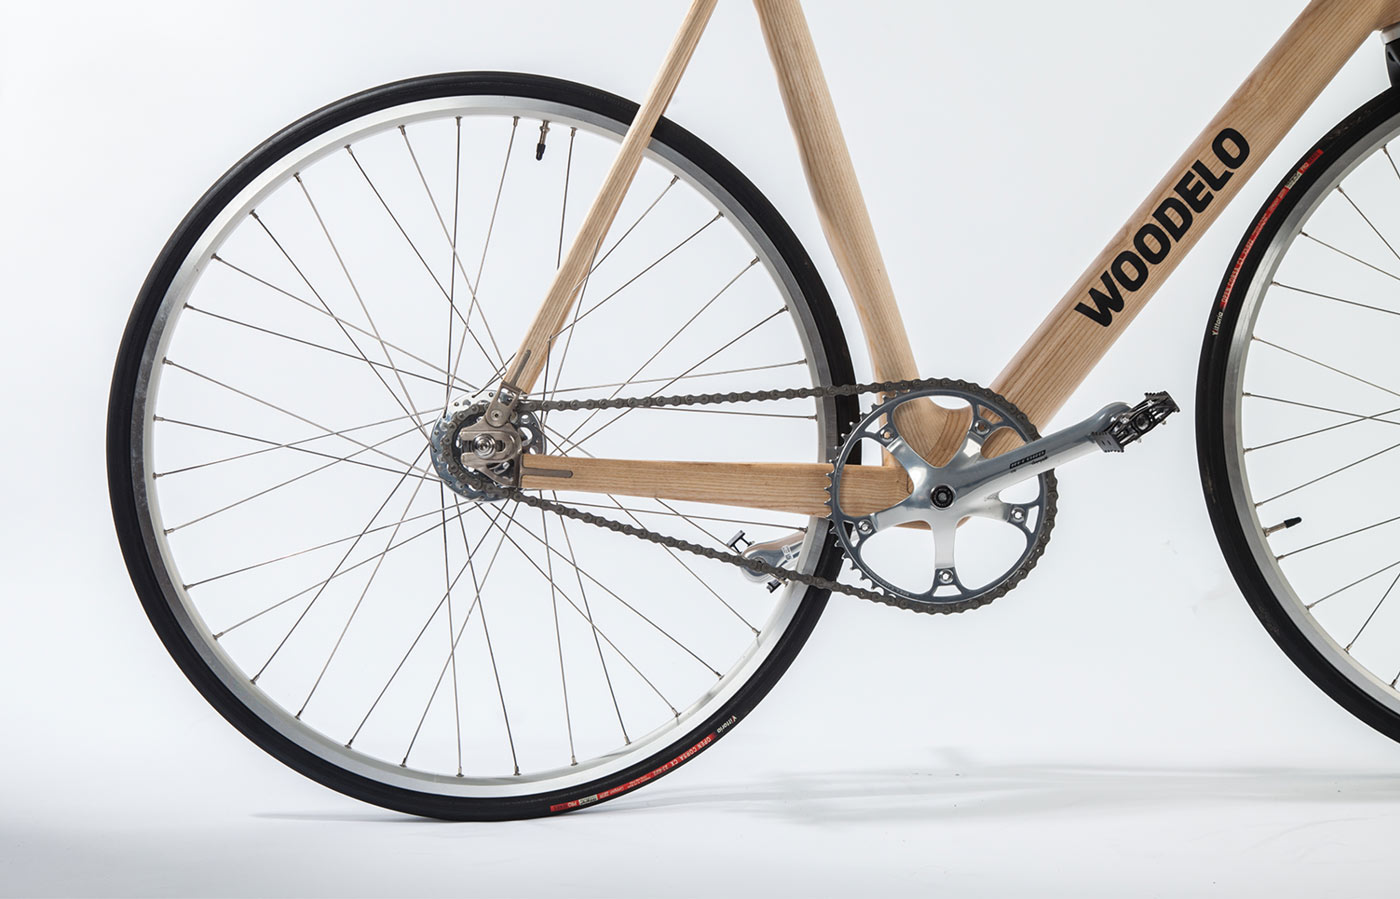 Woodelo photography production showing rear wheel details by Piquant Limerick